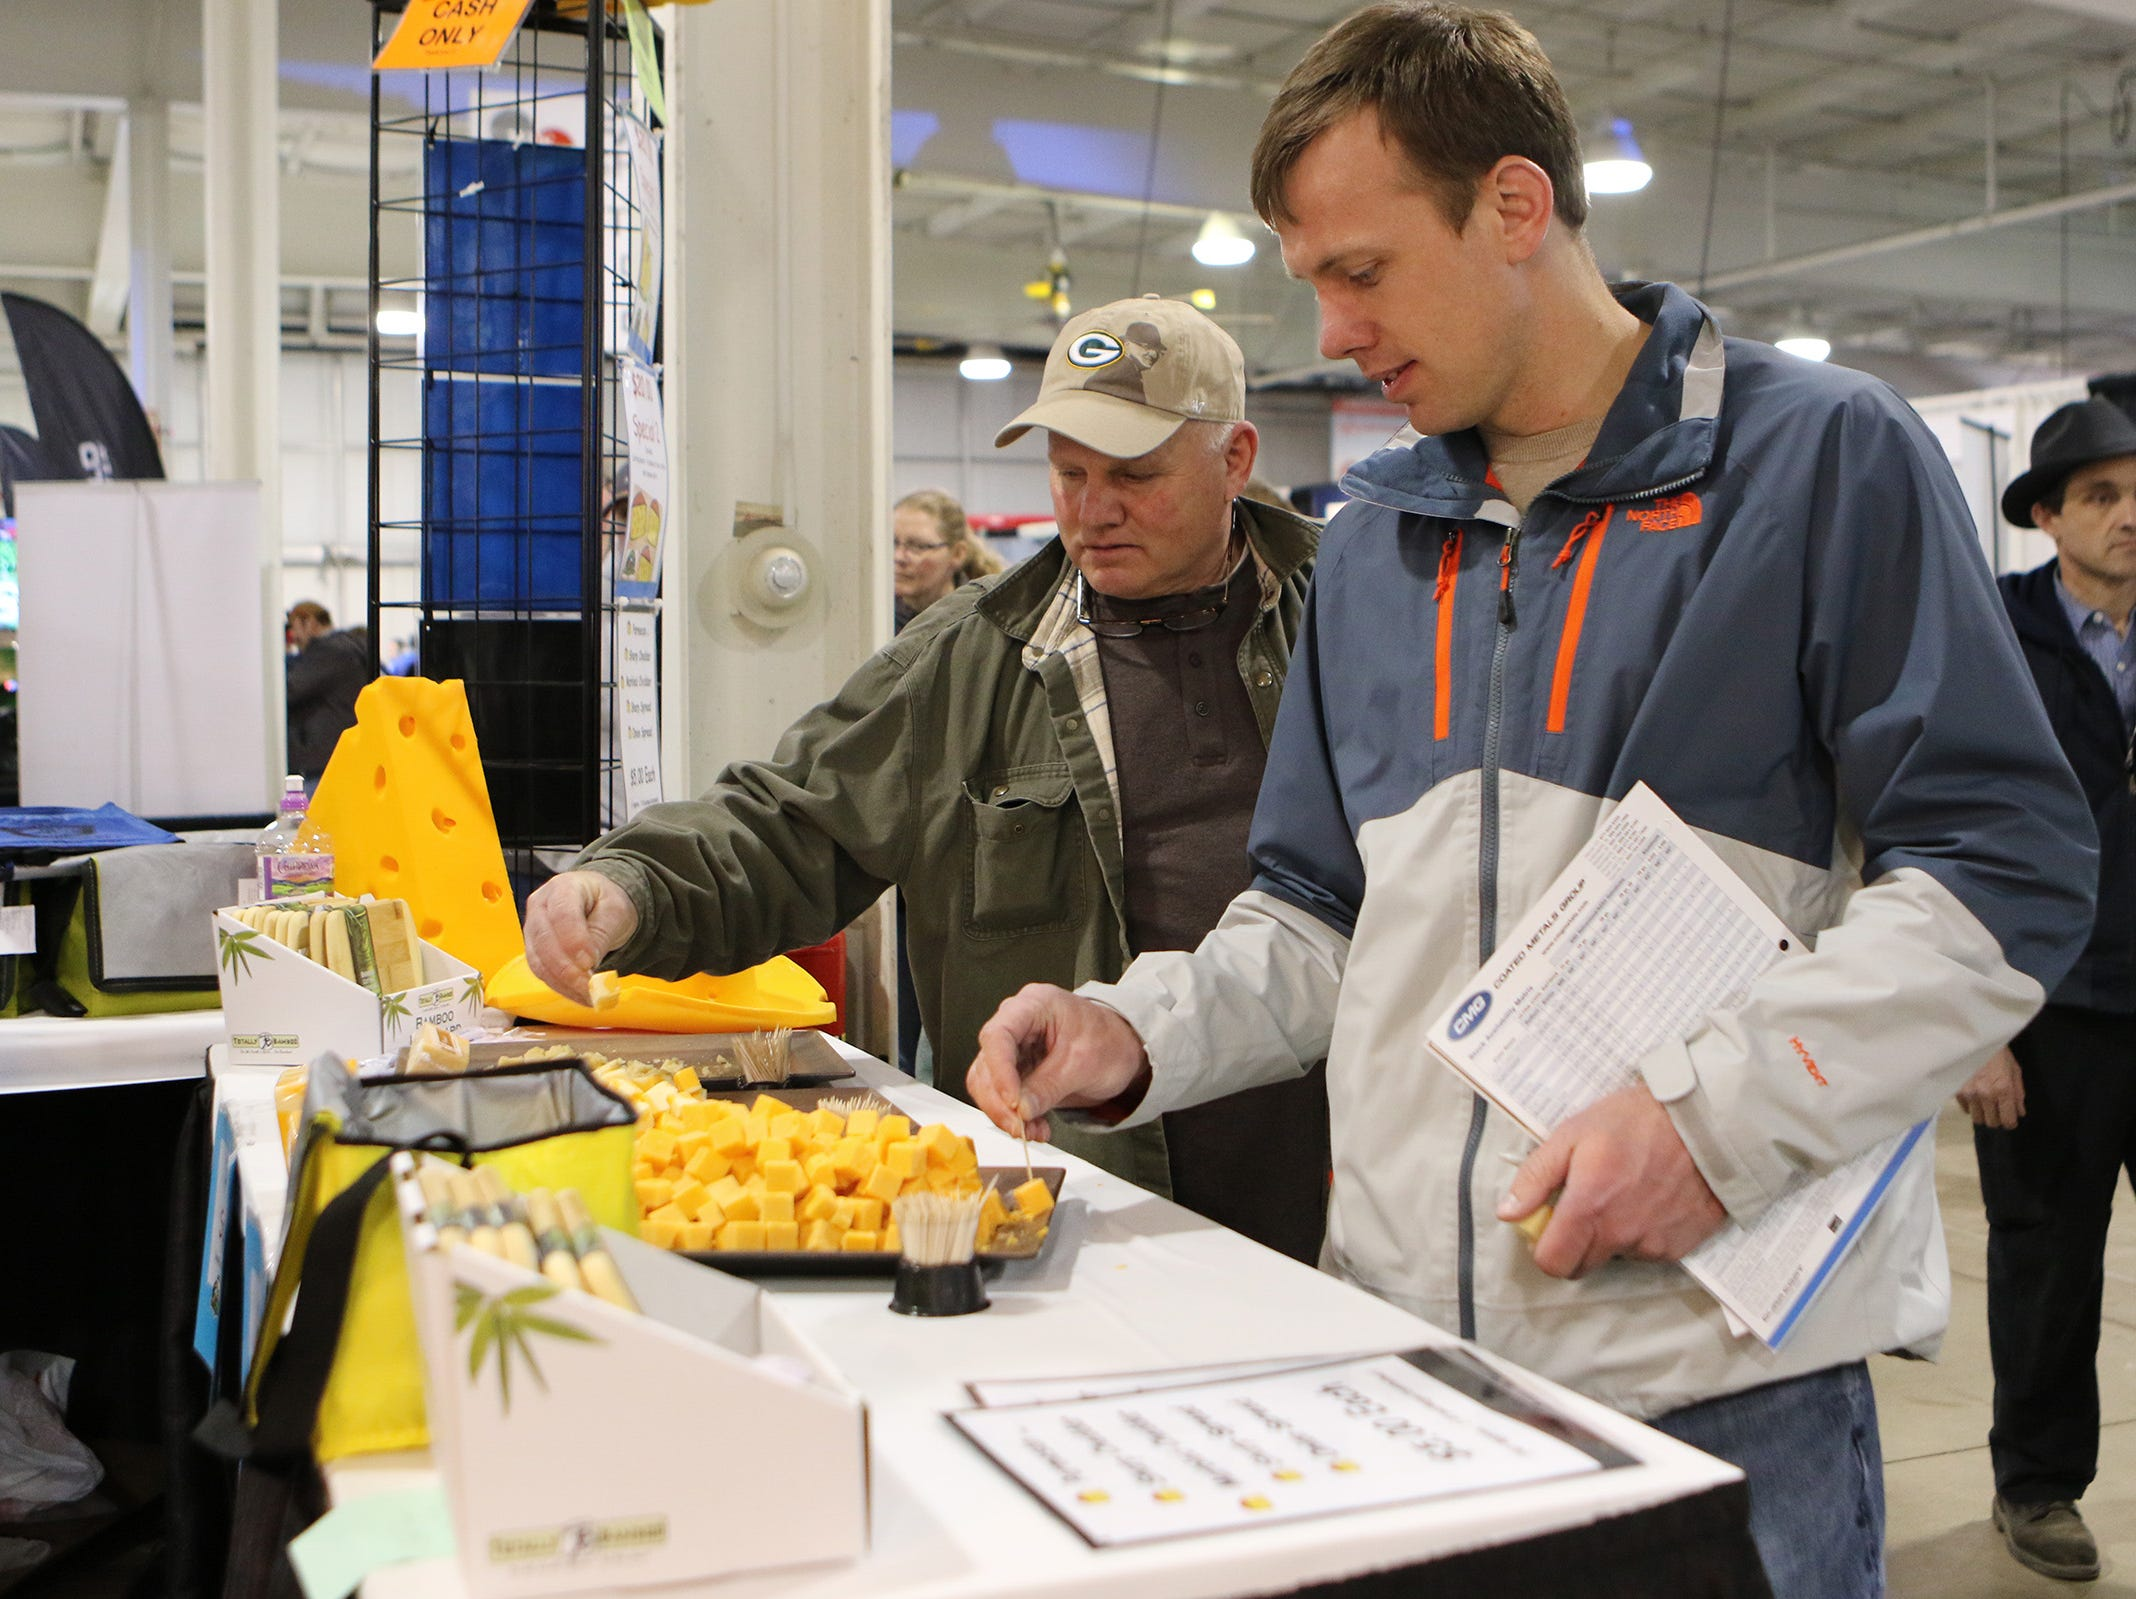 The line for cheese samples at Simon's Specialty Cheese was long but moved quickly at the Wisconsin Public Service Farm Show on March 27.